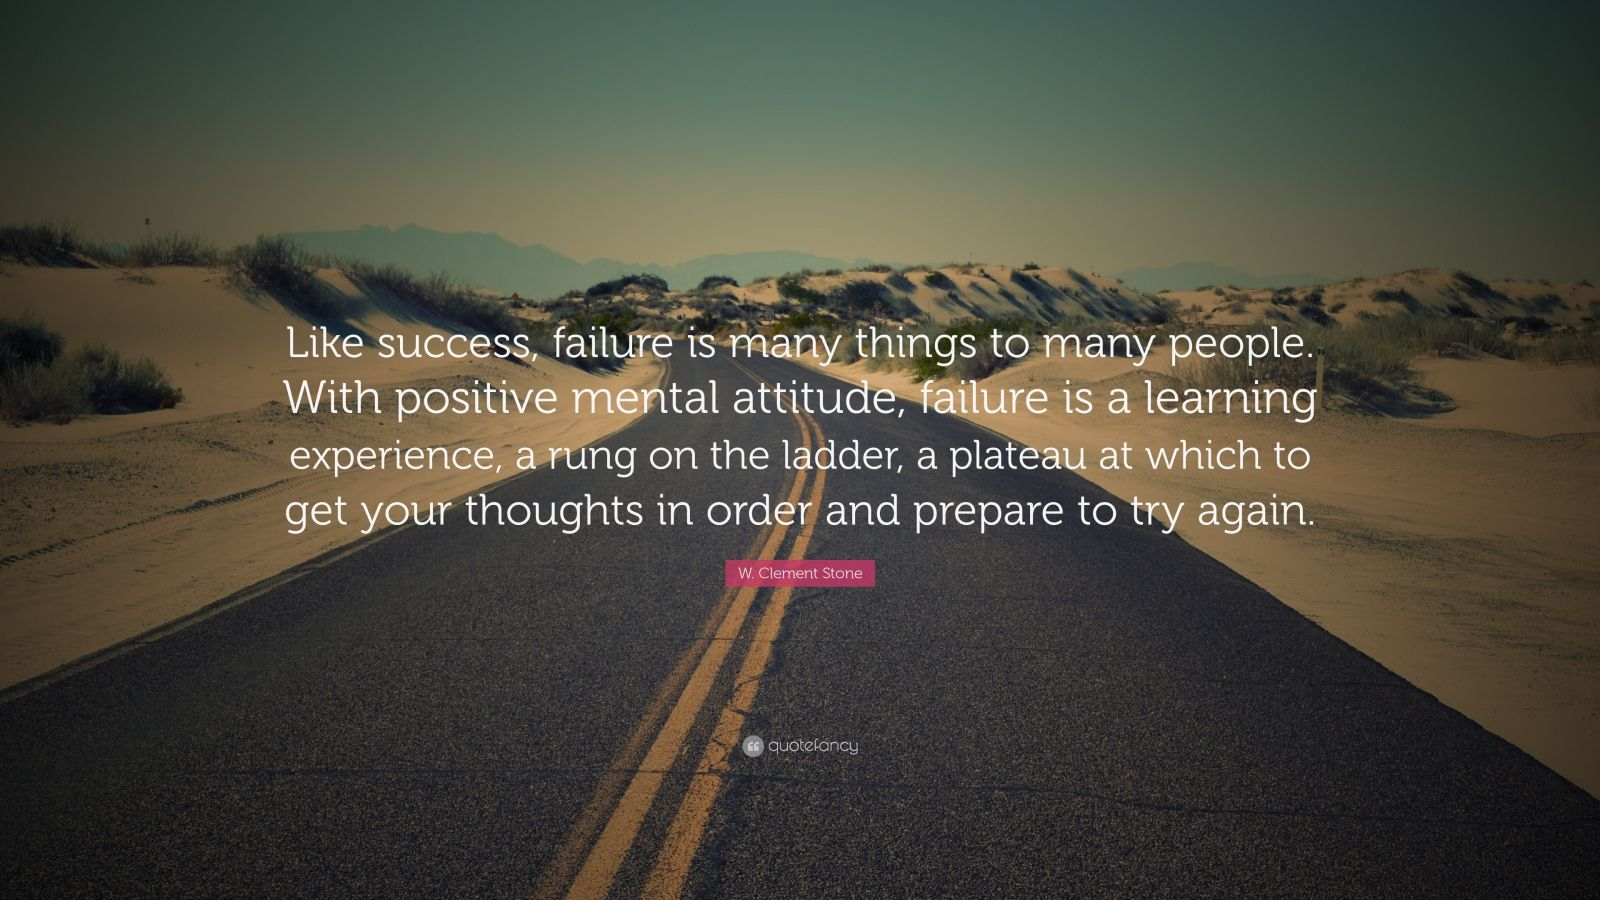 "W. Clement Stone Quote: ""Like success, failure is many things to many people. With positive mental attitude, failure is a learning experience, a rung on the ladder, a plateau at which to get your thoughts in order and prepare to try again."""